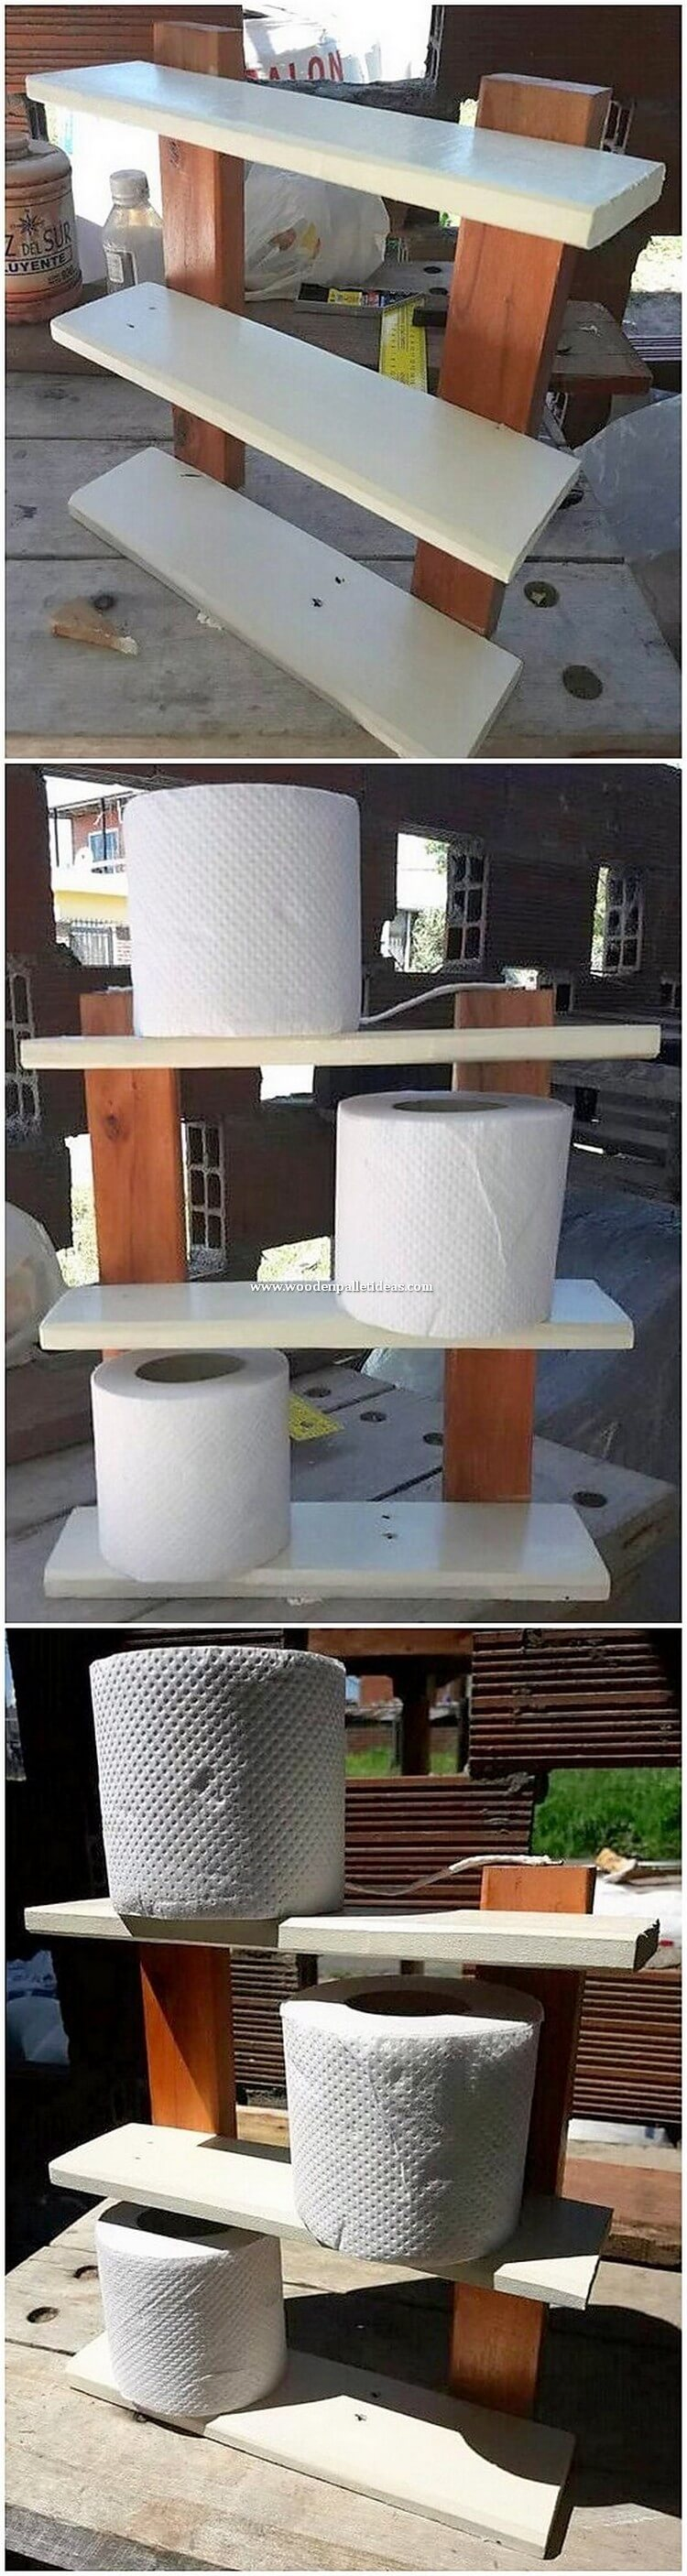 Pallet Toilet Paper Roll Stand